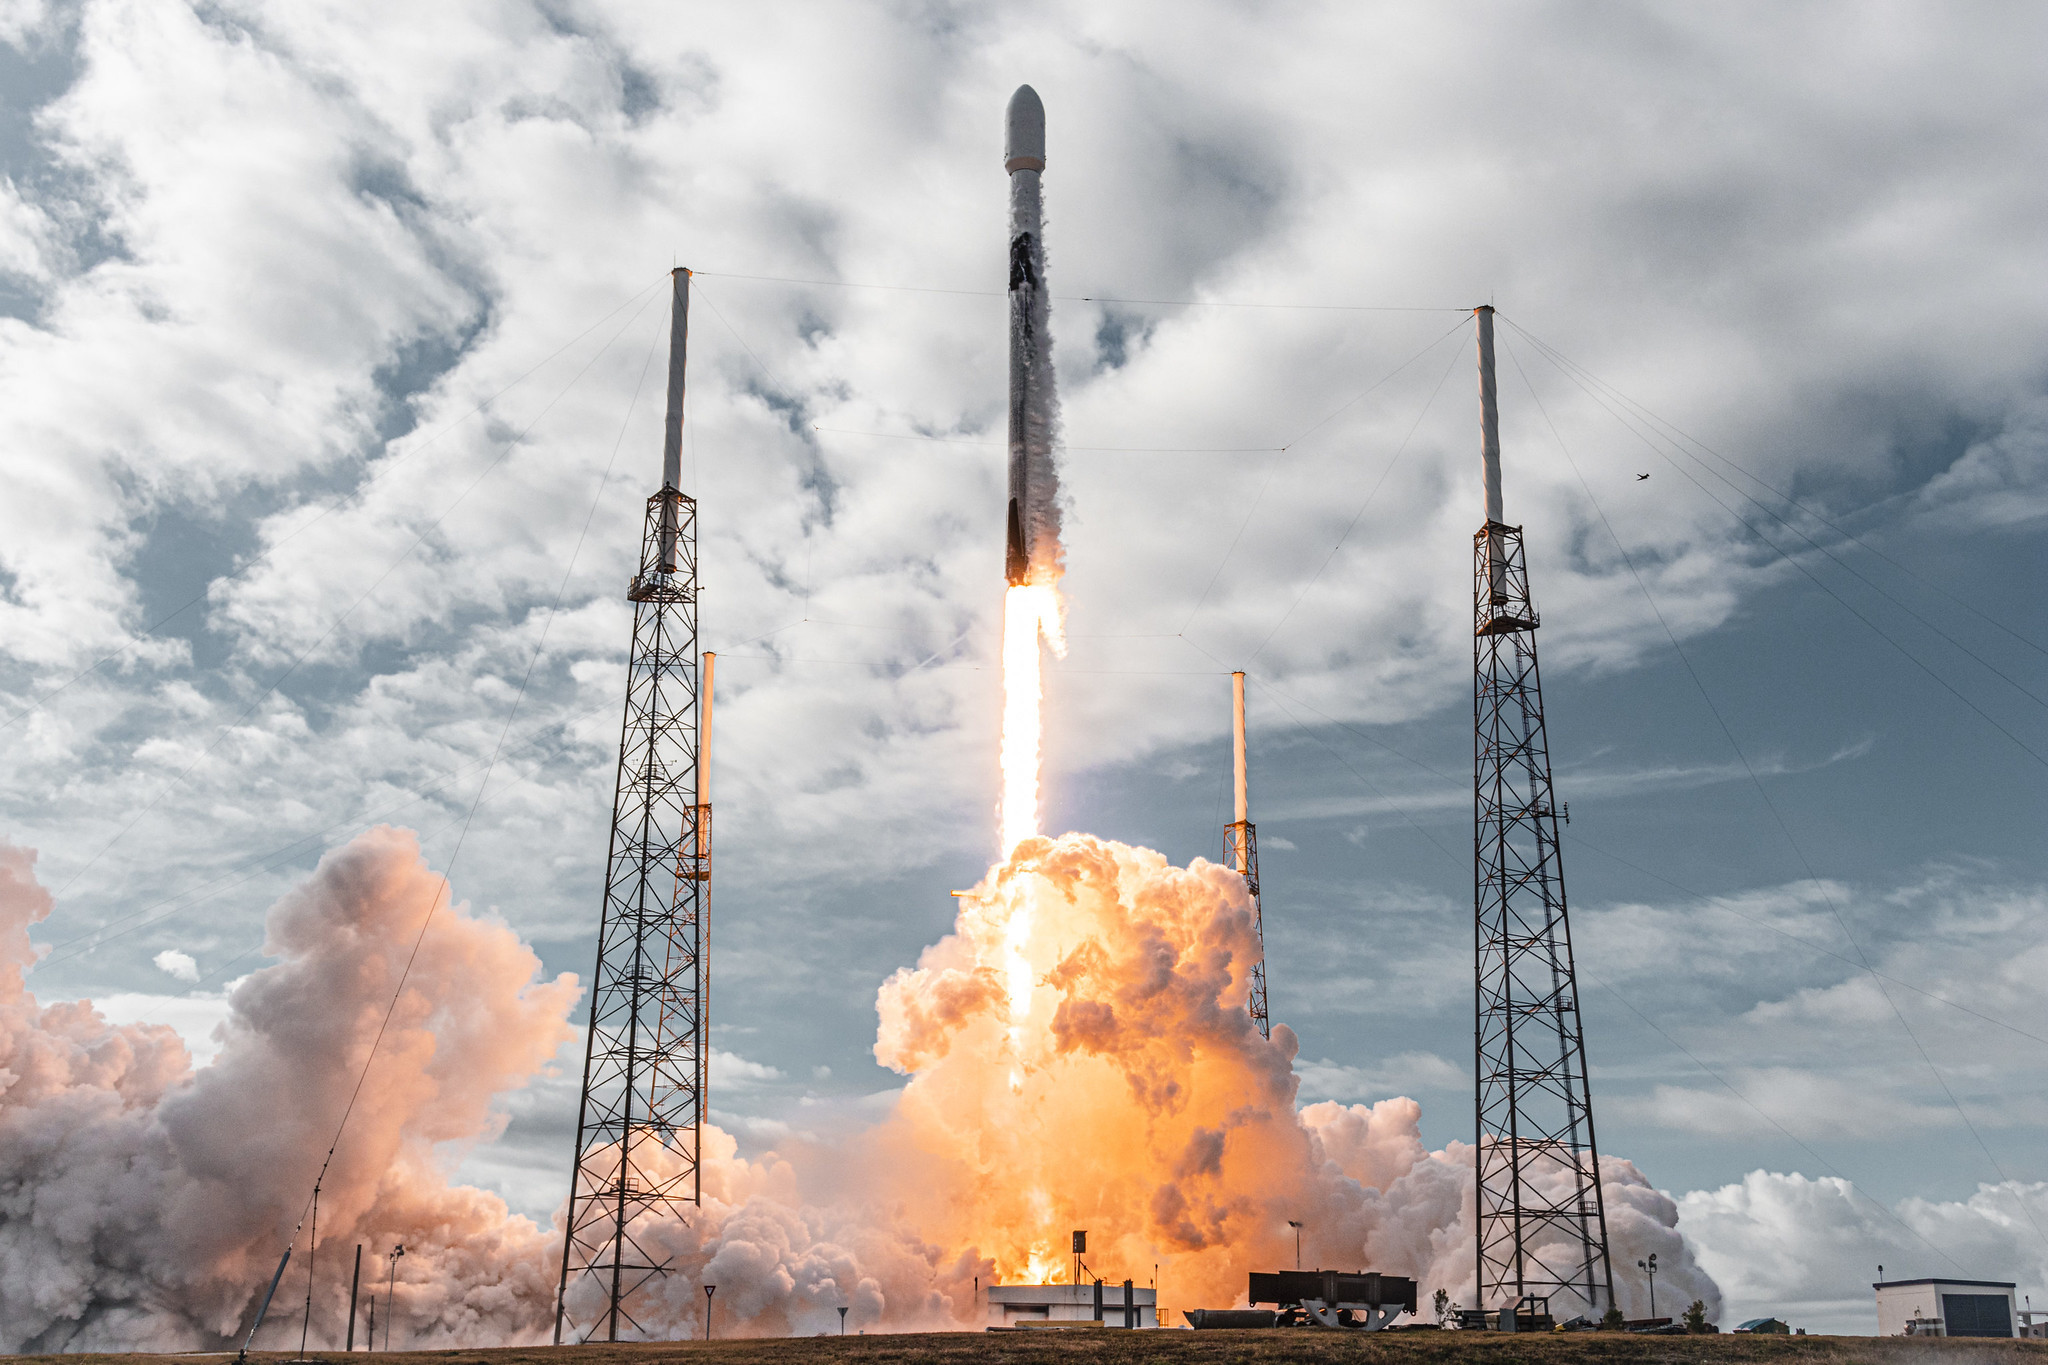 SpaceX's rideshare carried small satellite technology of interest to US military - SpaceNews